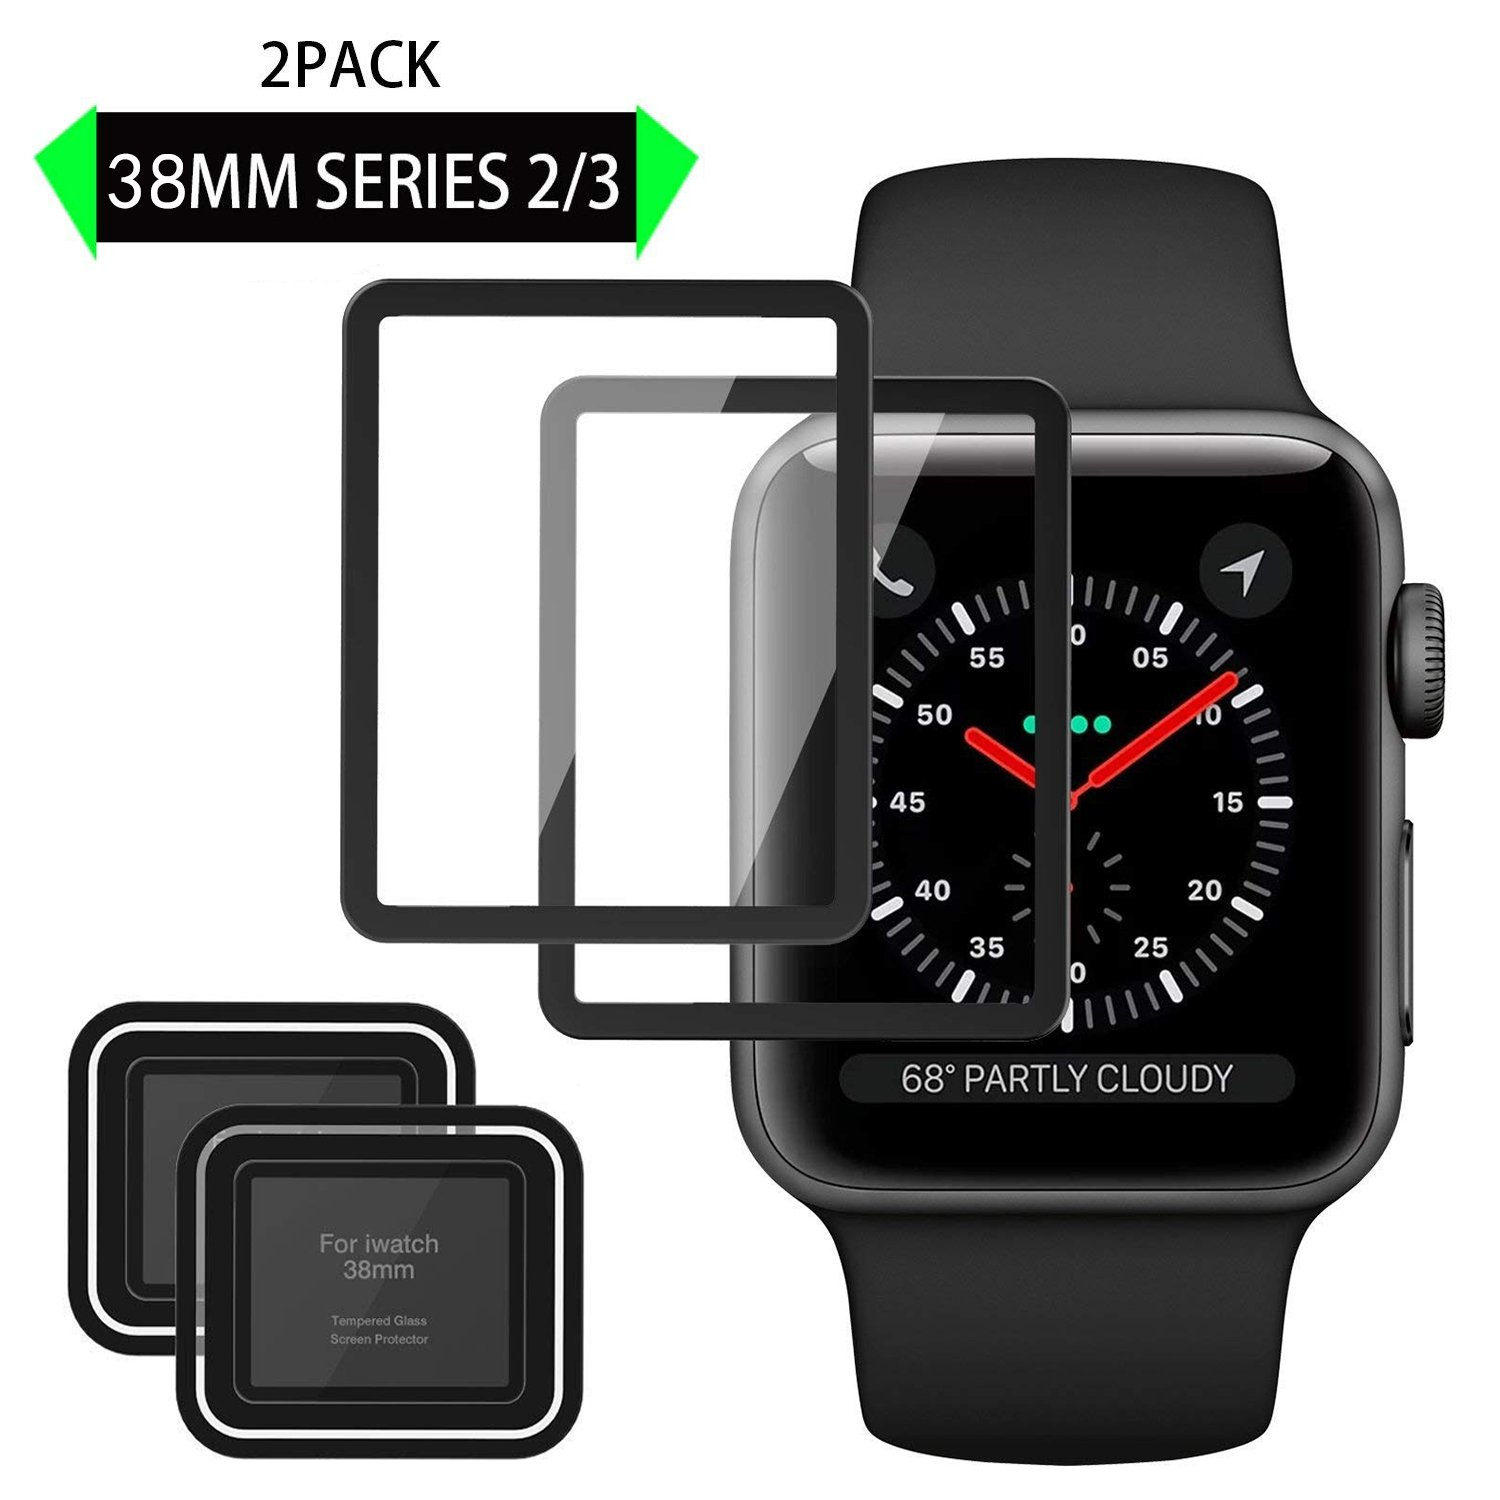 Elinkee Apple iWatch Screen Protector 38mm, [2 Pack] [Anti-Scratch] [High Definition] Premium Tempered Glass Screen Protector for Apple Watch 38mm Series 3/2 by Elinkee